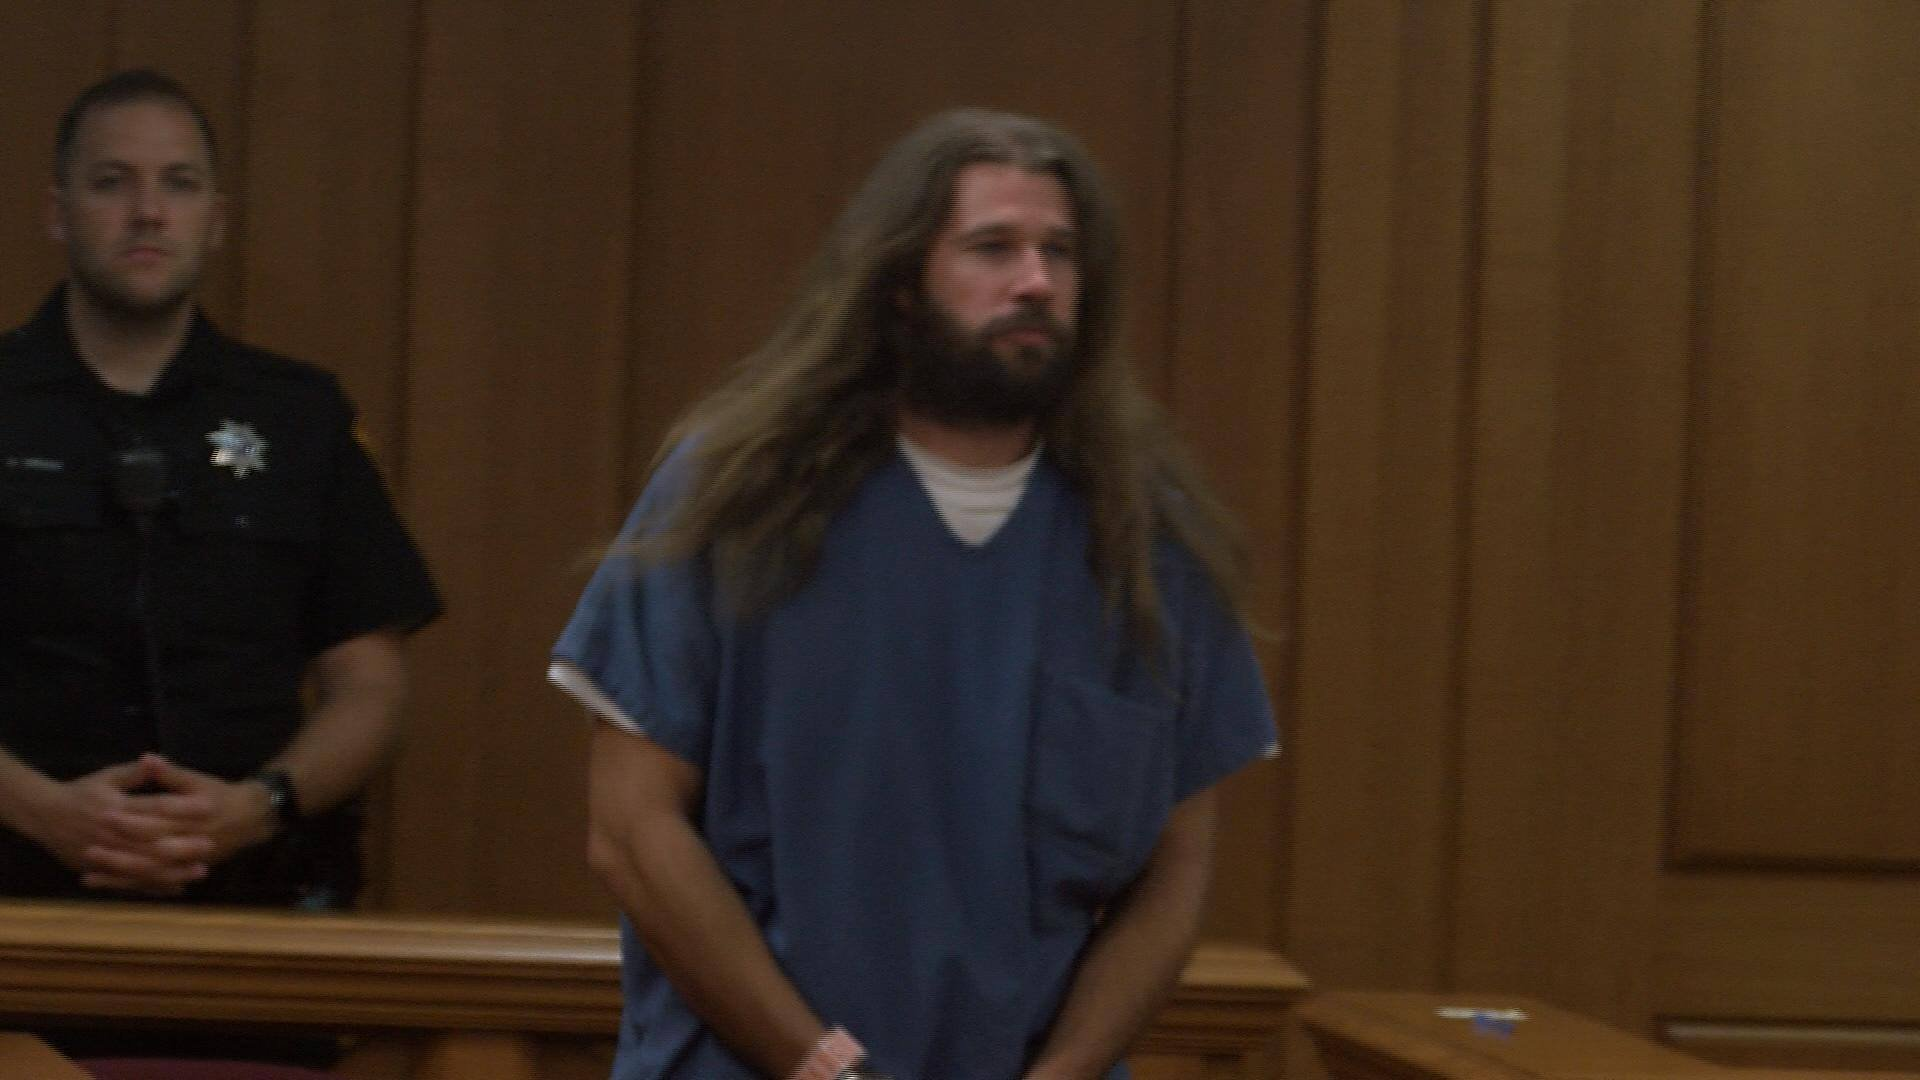 Erik Sackett makes his first appearance in La Crosse County Circuit Court on a homicide charge in the death of Erin Somvilai. Bond was set at $1 million by Judge Ramona Gonzalez.